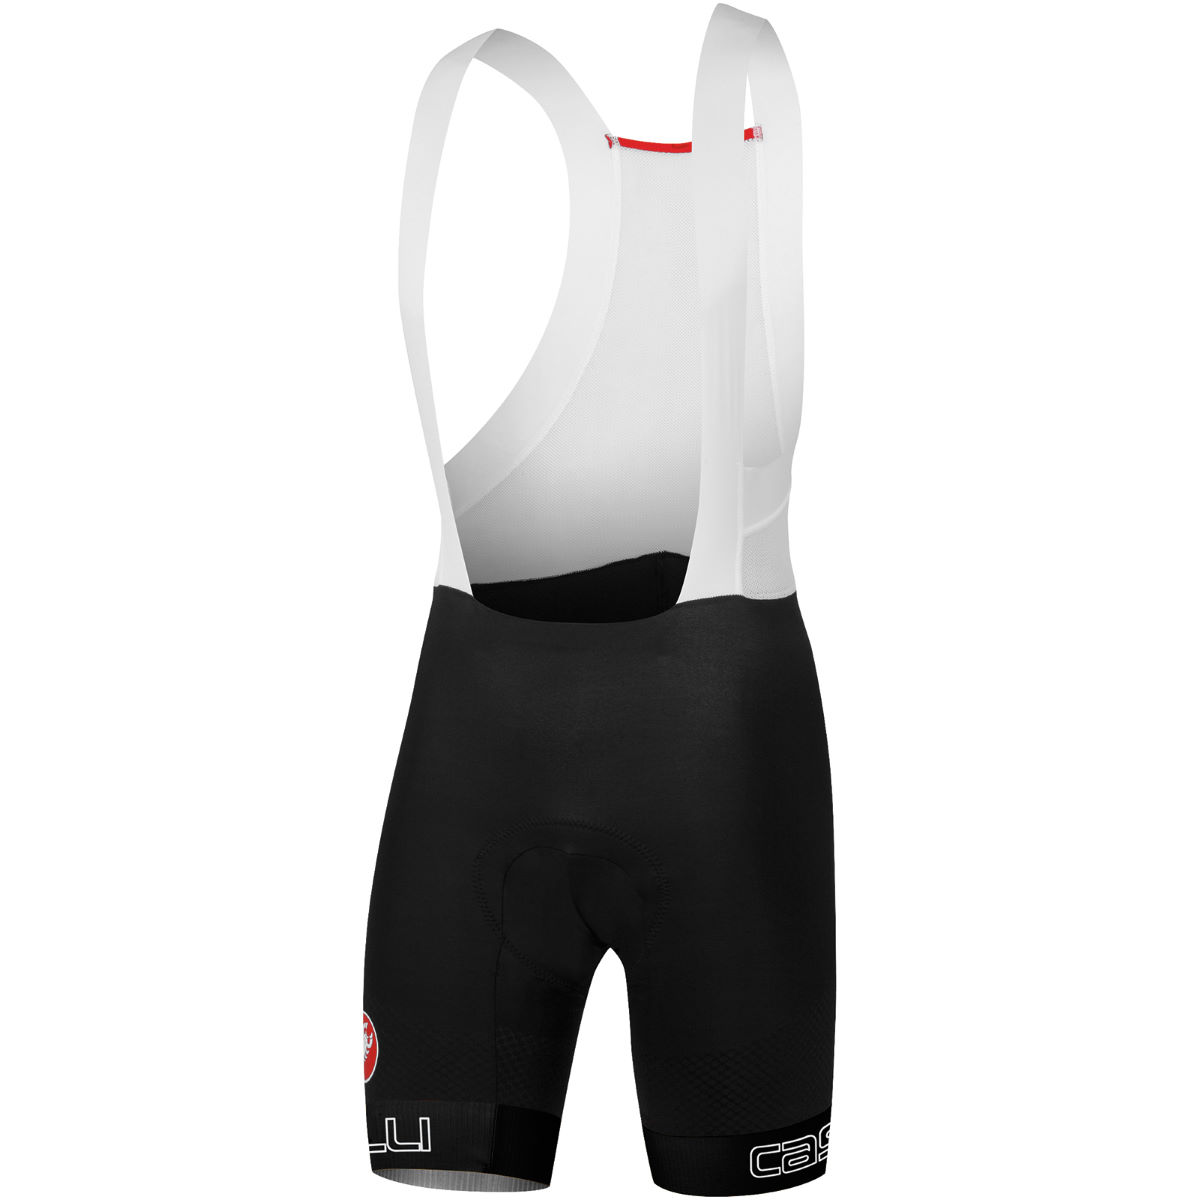 Castelli Body Paint 2.0 Bib Short